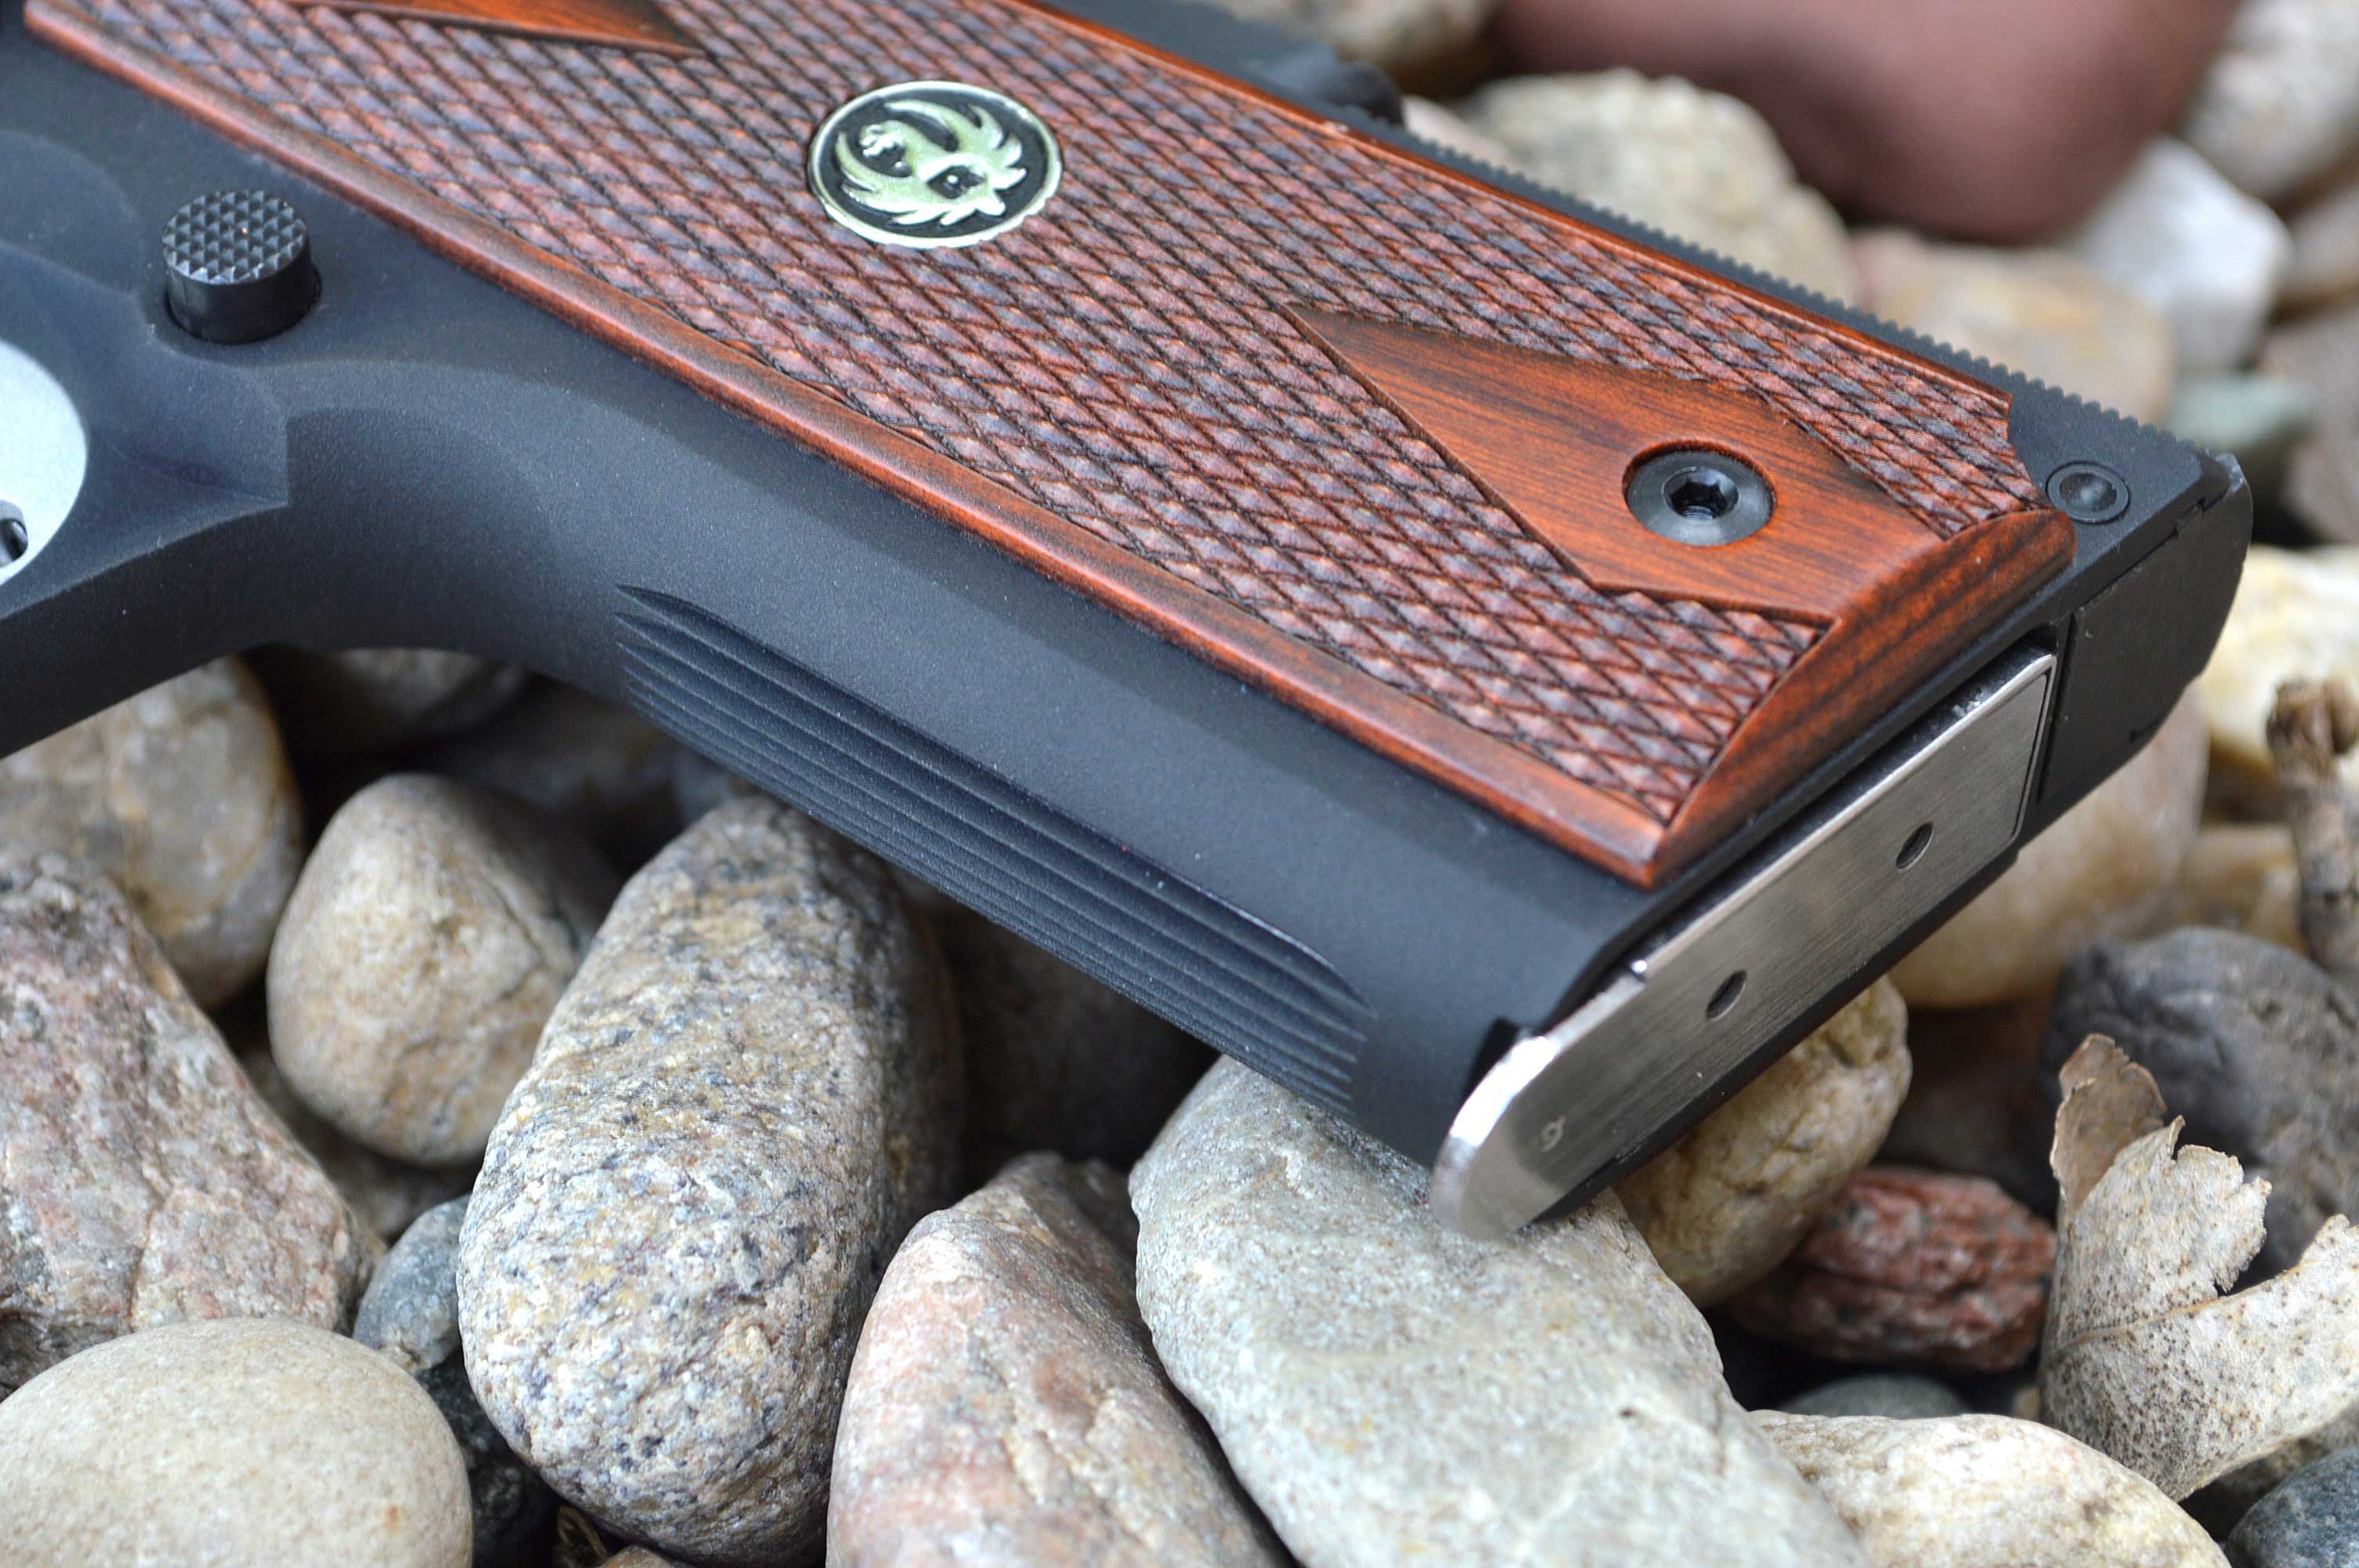 Grip face of the Ruger SR1911 pistol